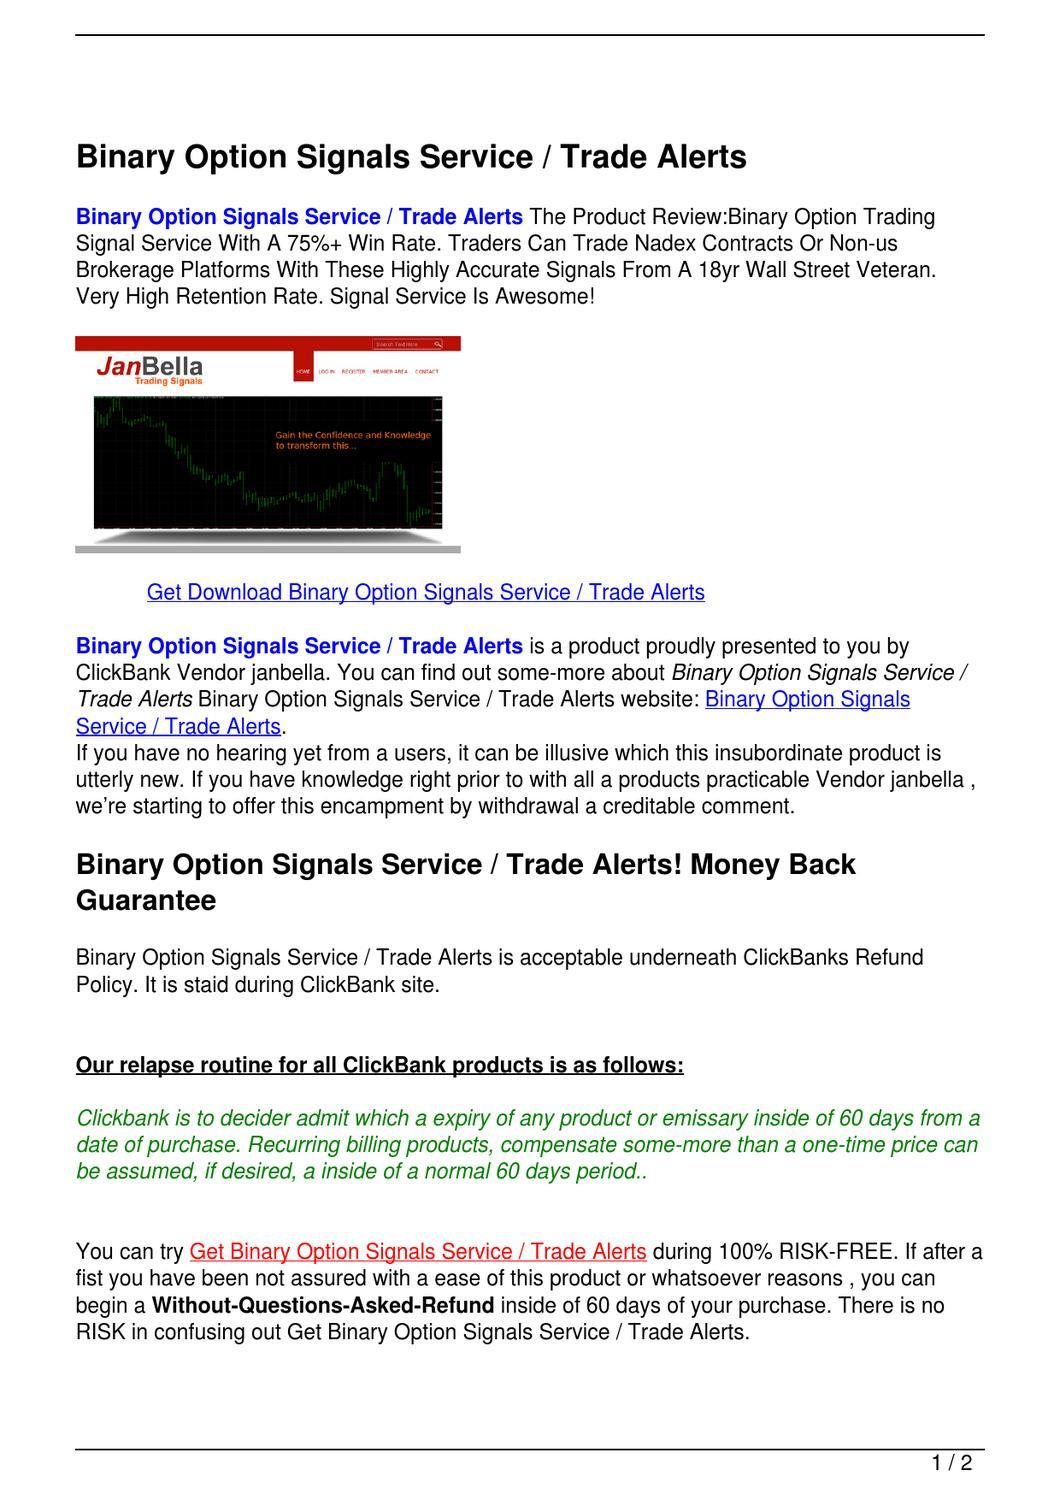 Option trading services